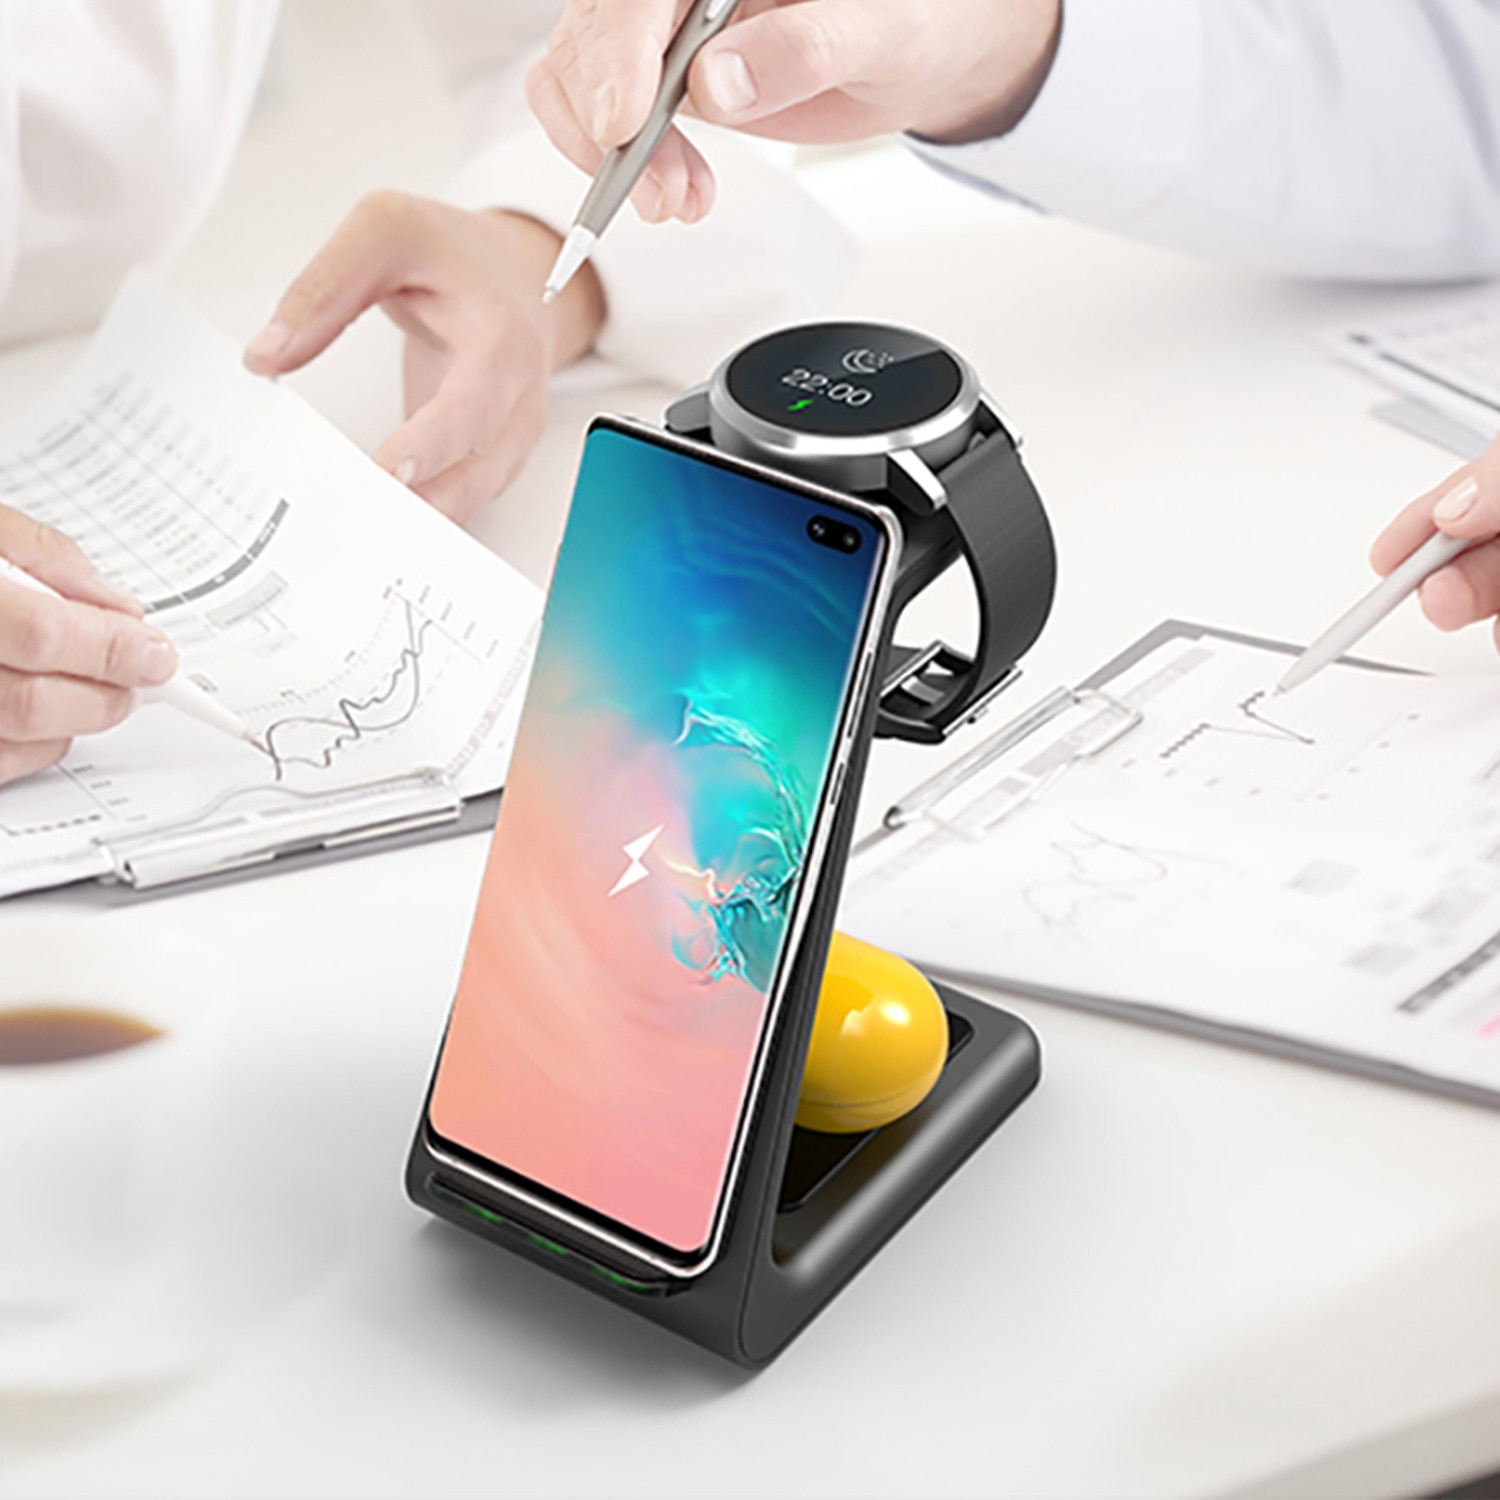 Wireless desktop charger for iPhone 12, 11, watch, airplads, 3 in 1, wireless charging station, For